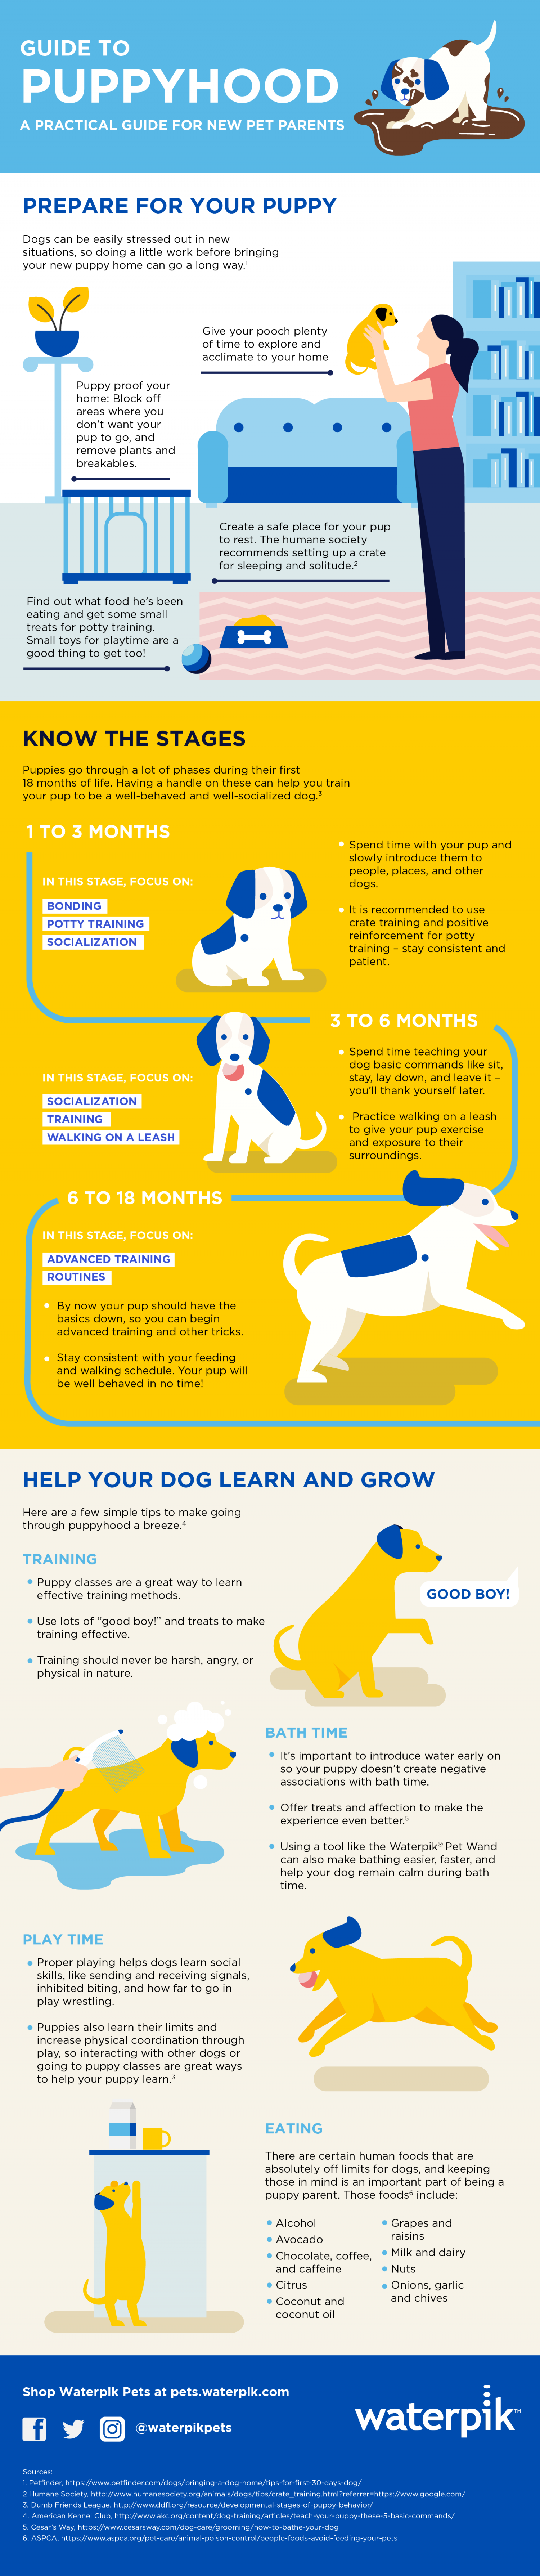 Guide to Puppyhood Infographic